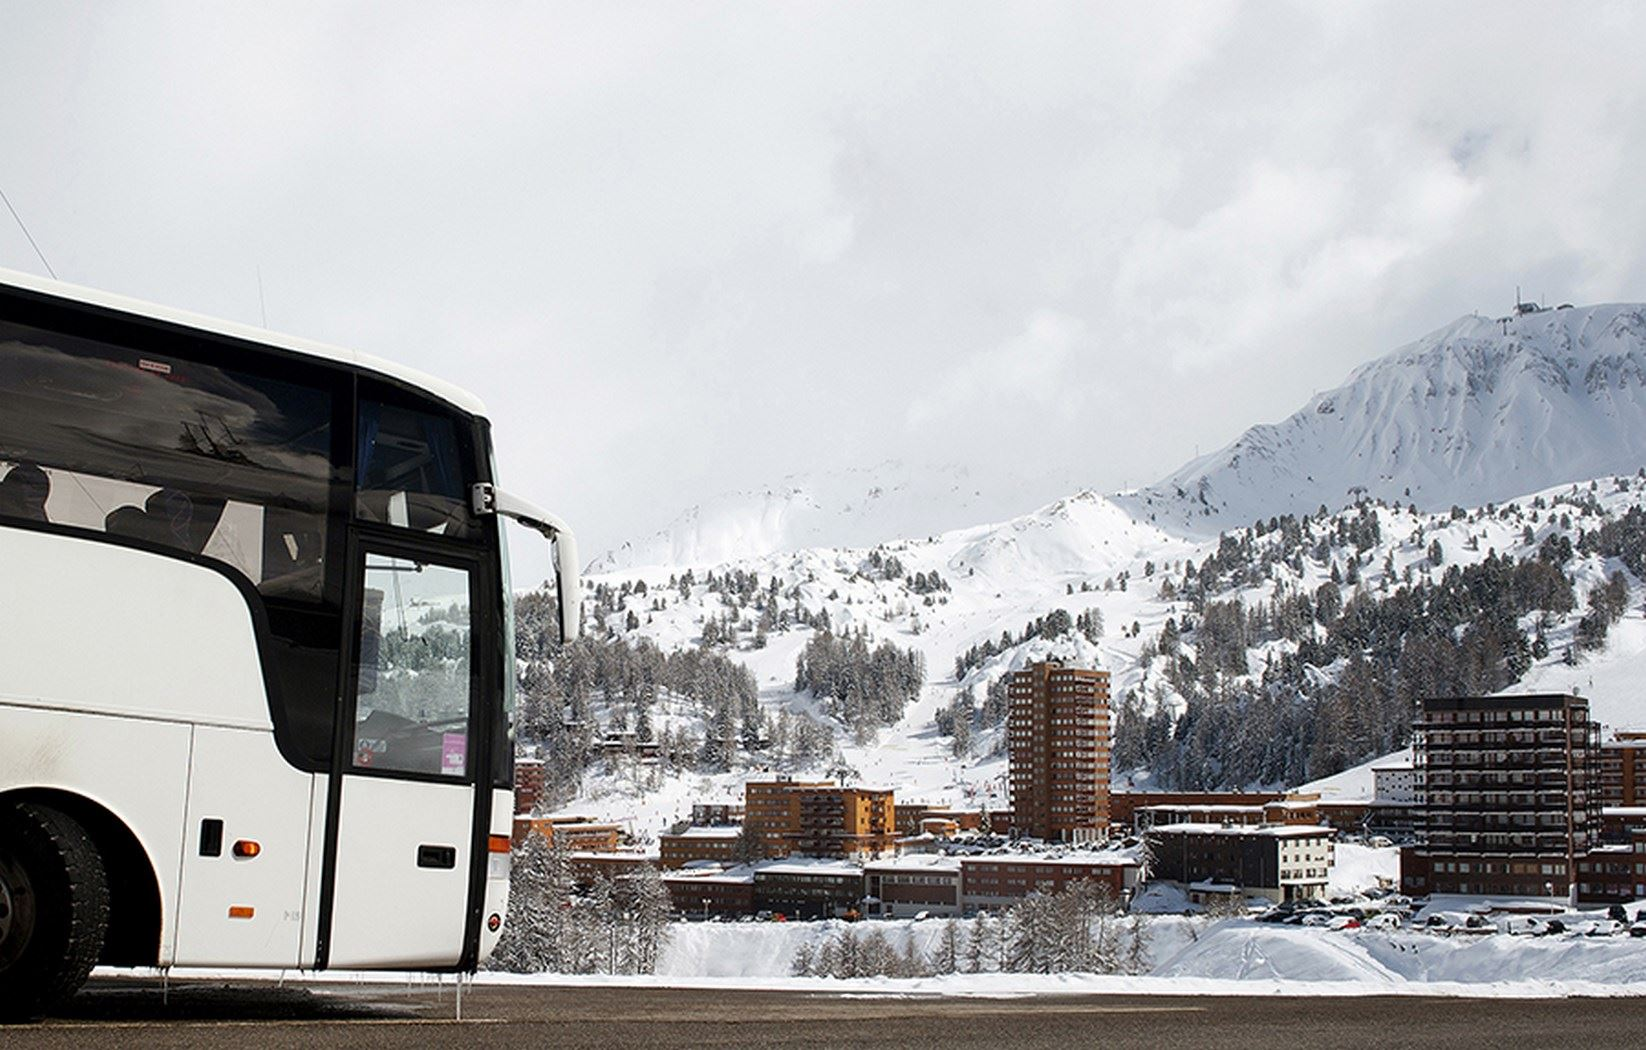 Moutiers Train Station --> Val Thorens Place des Arolles: 11:30 AM